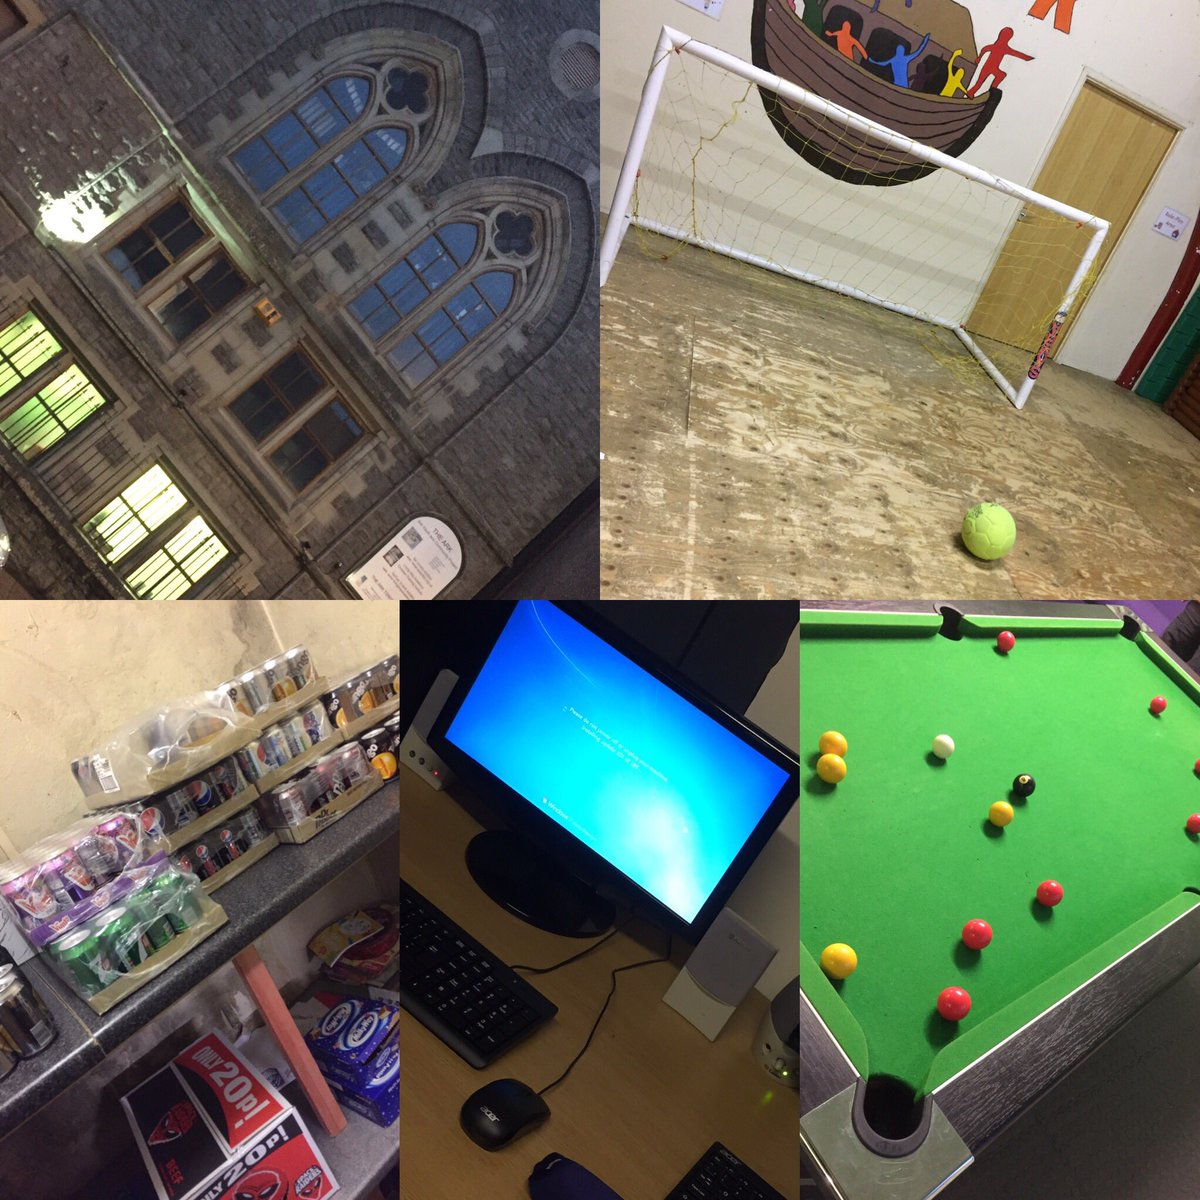 were back  #WereBack #youth #RCT #Tonypandy #StockedUp #pool #youthclub #Wednesday<br>http://pic.twitter.com/dwChjGmBlo